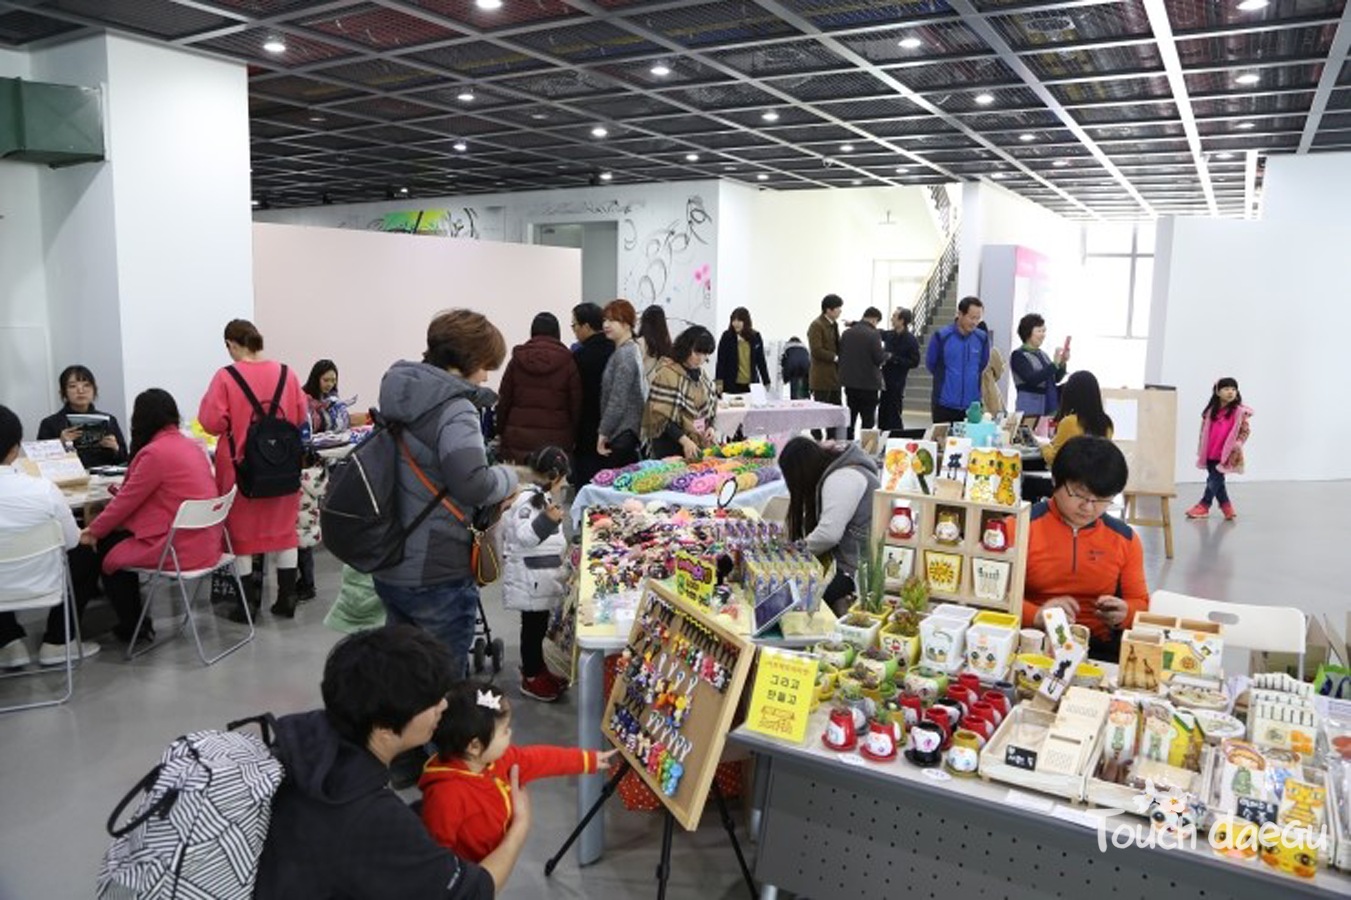 A flea market will be held at Daegu Art Factory